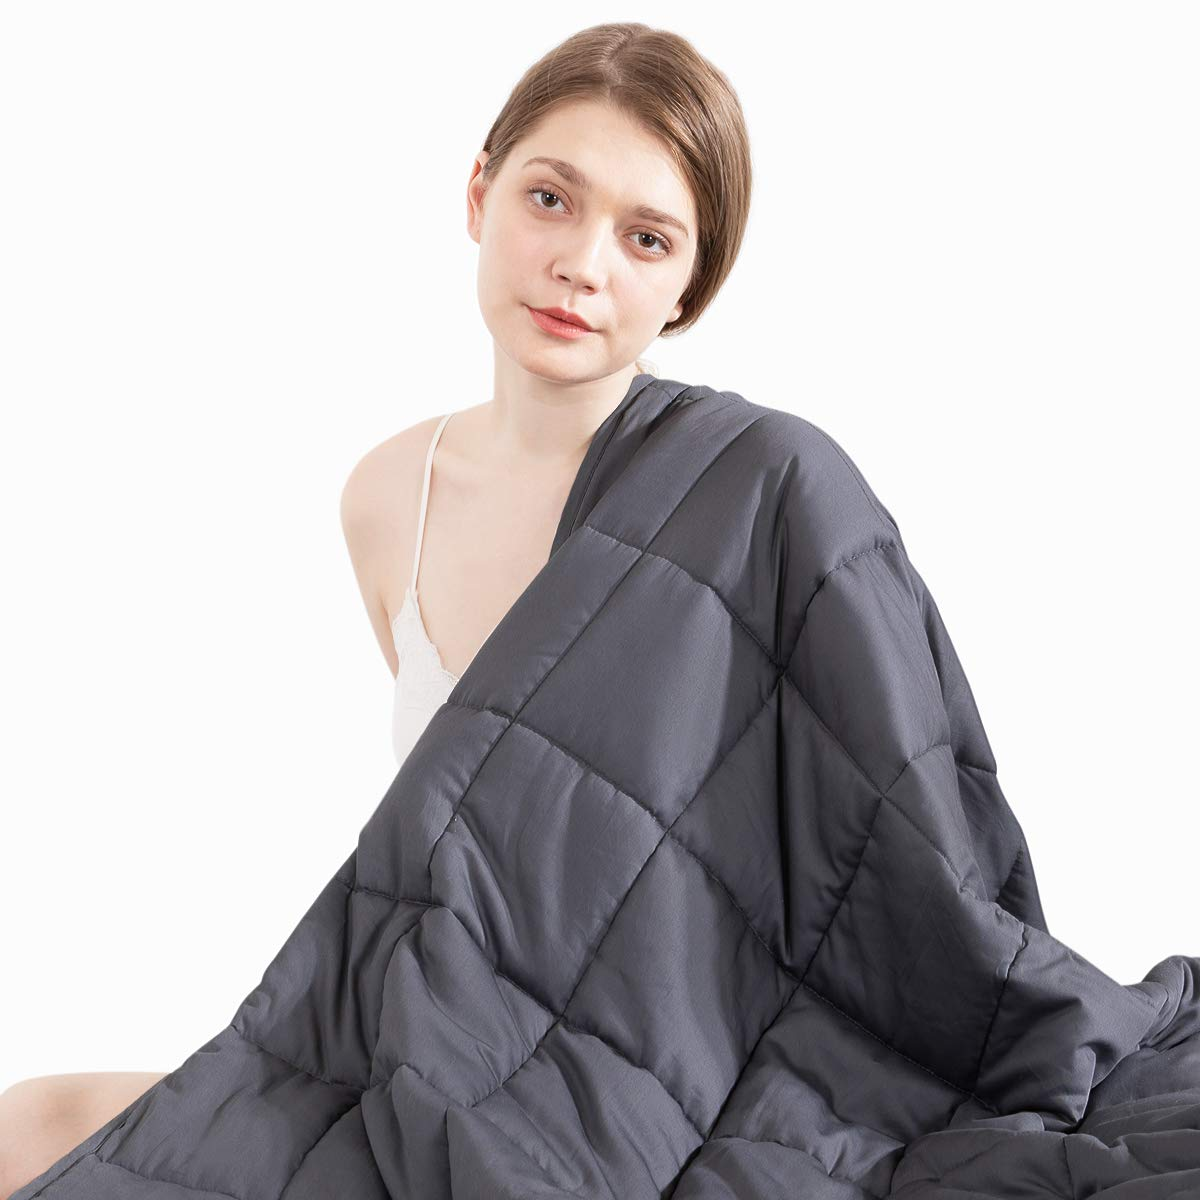 Beauty Kate Weighted Blanket Adult 15 lbs 60''x80'' Queen Size 100% Organic Cooling Cotton Heavy Blanket for Improved Sleep & Relieving Anxiety (Summer Upgraded Version)